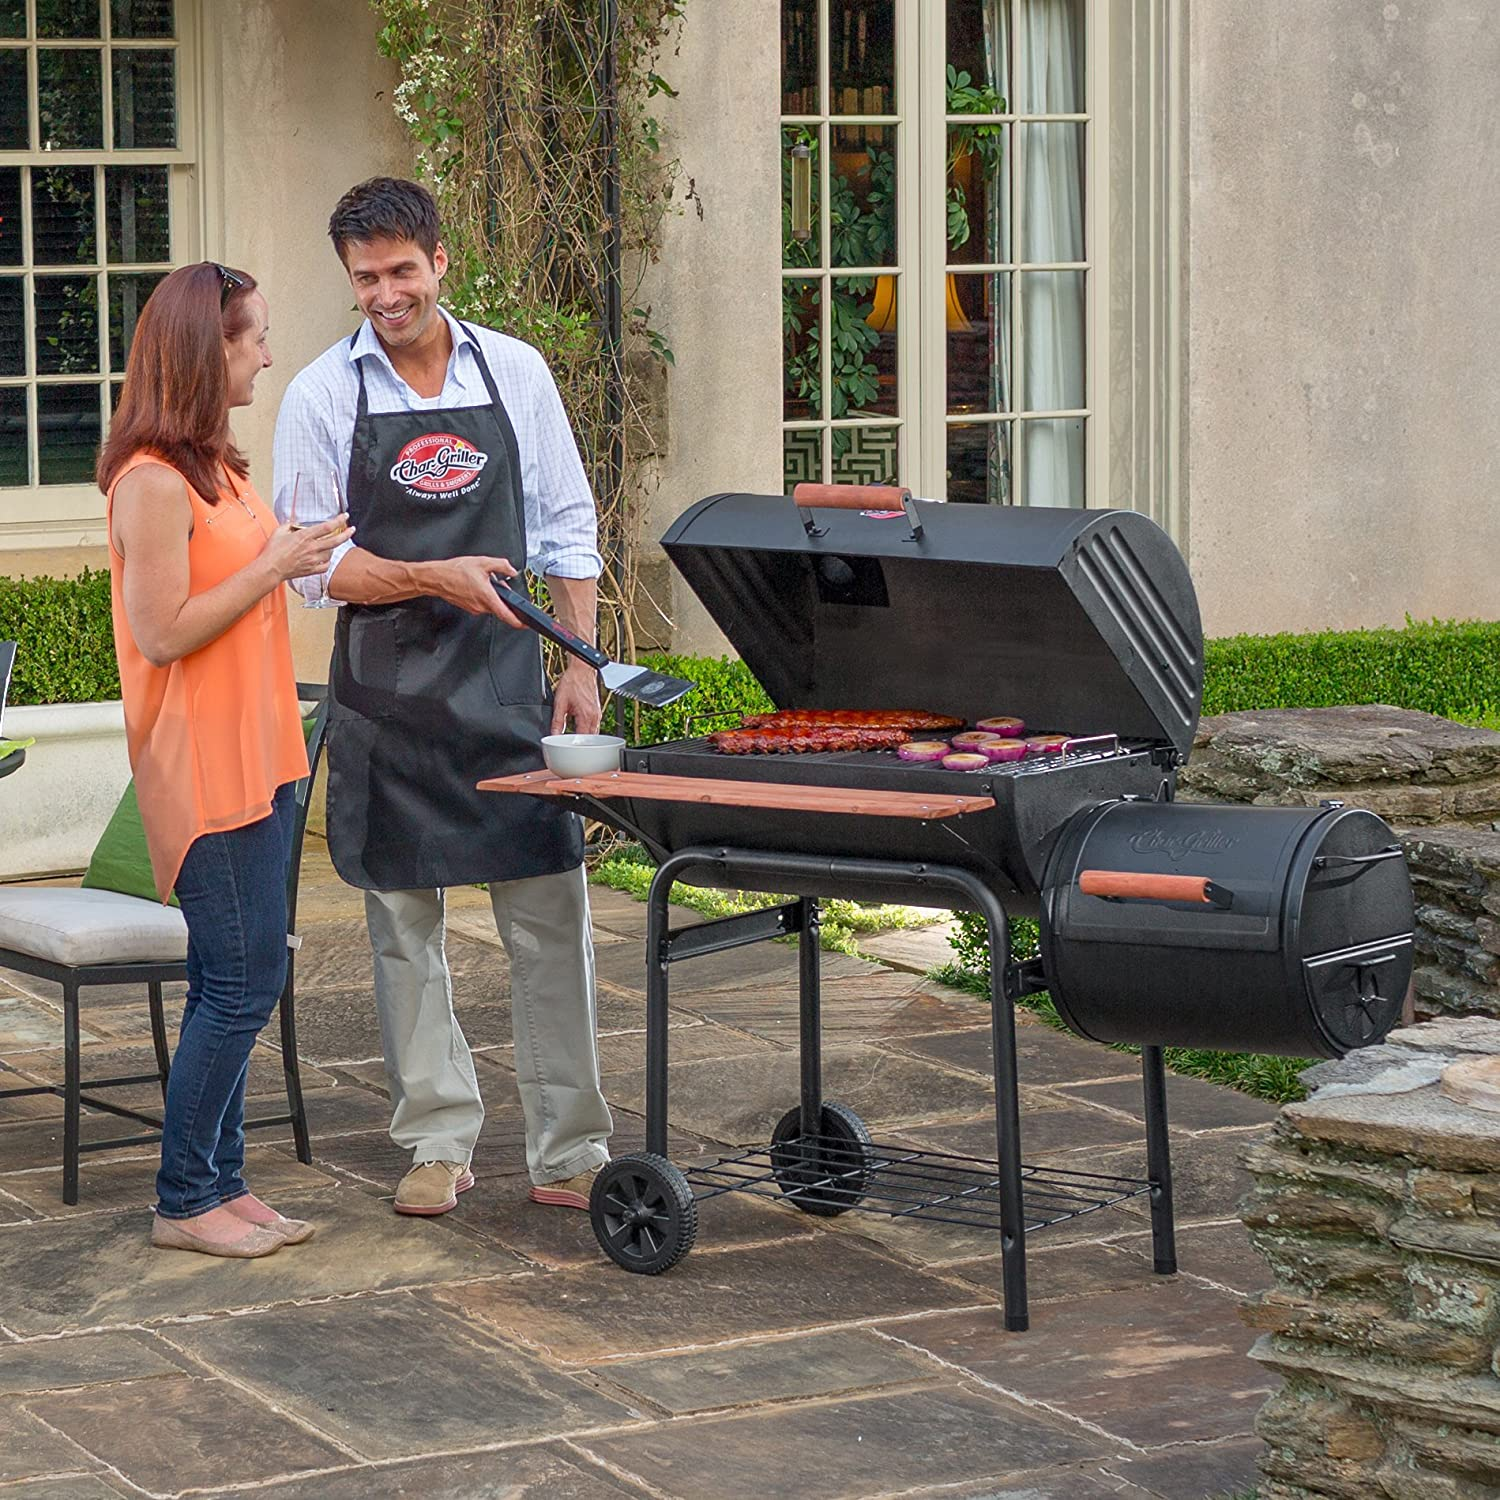 Char-Griller E1224 Smokin Pro Charcoal Grill in use